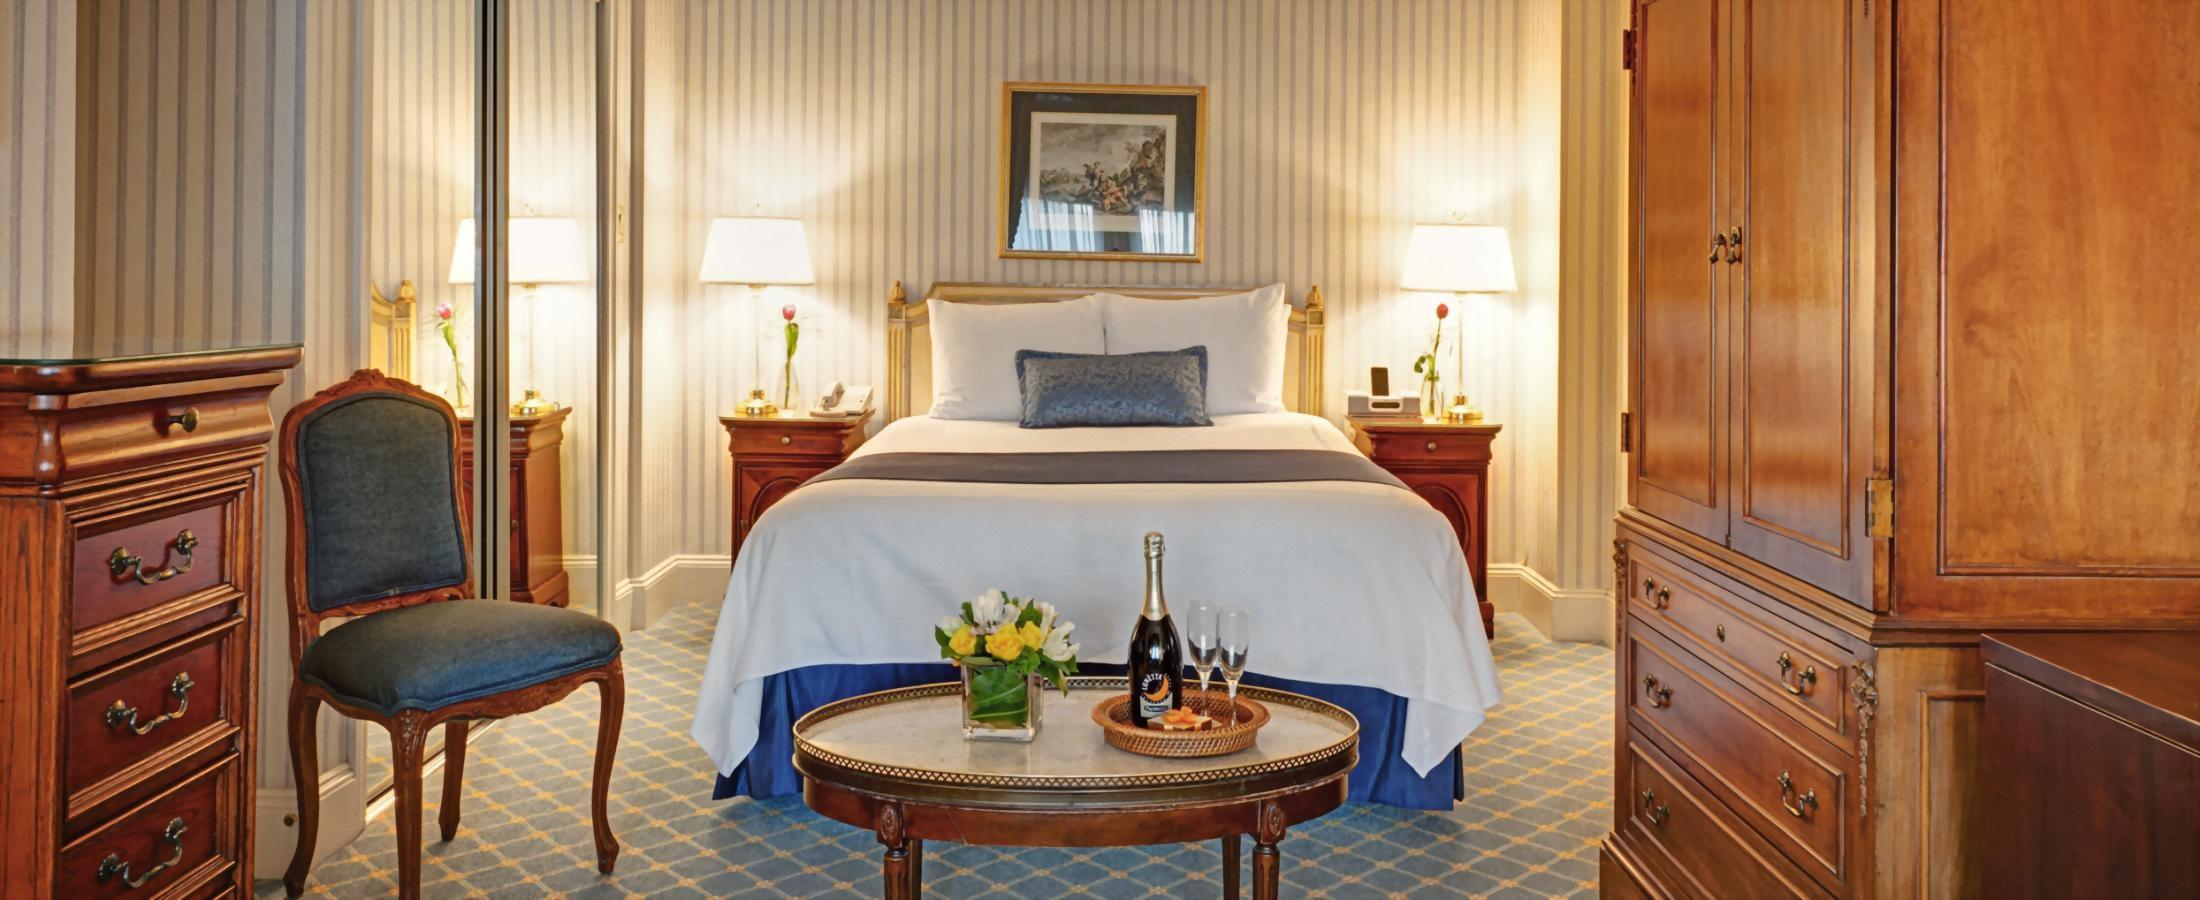 Deluxe Queen Room with 1 Queen Bed at New York City's Hotel Elysee